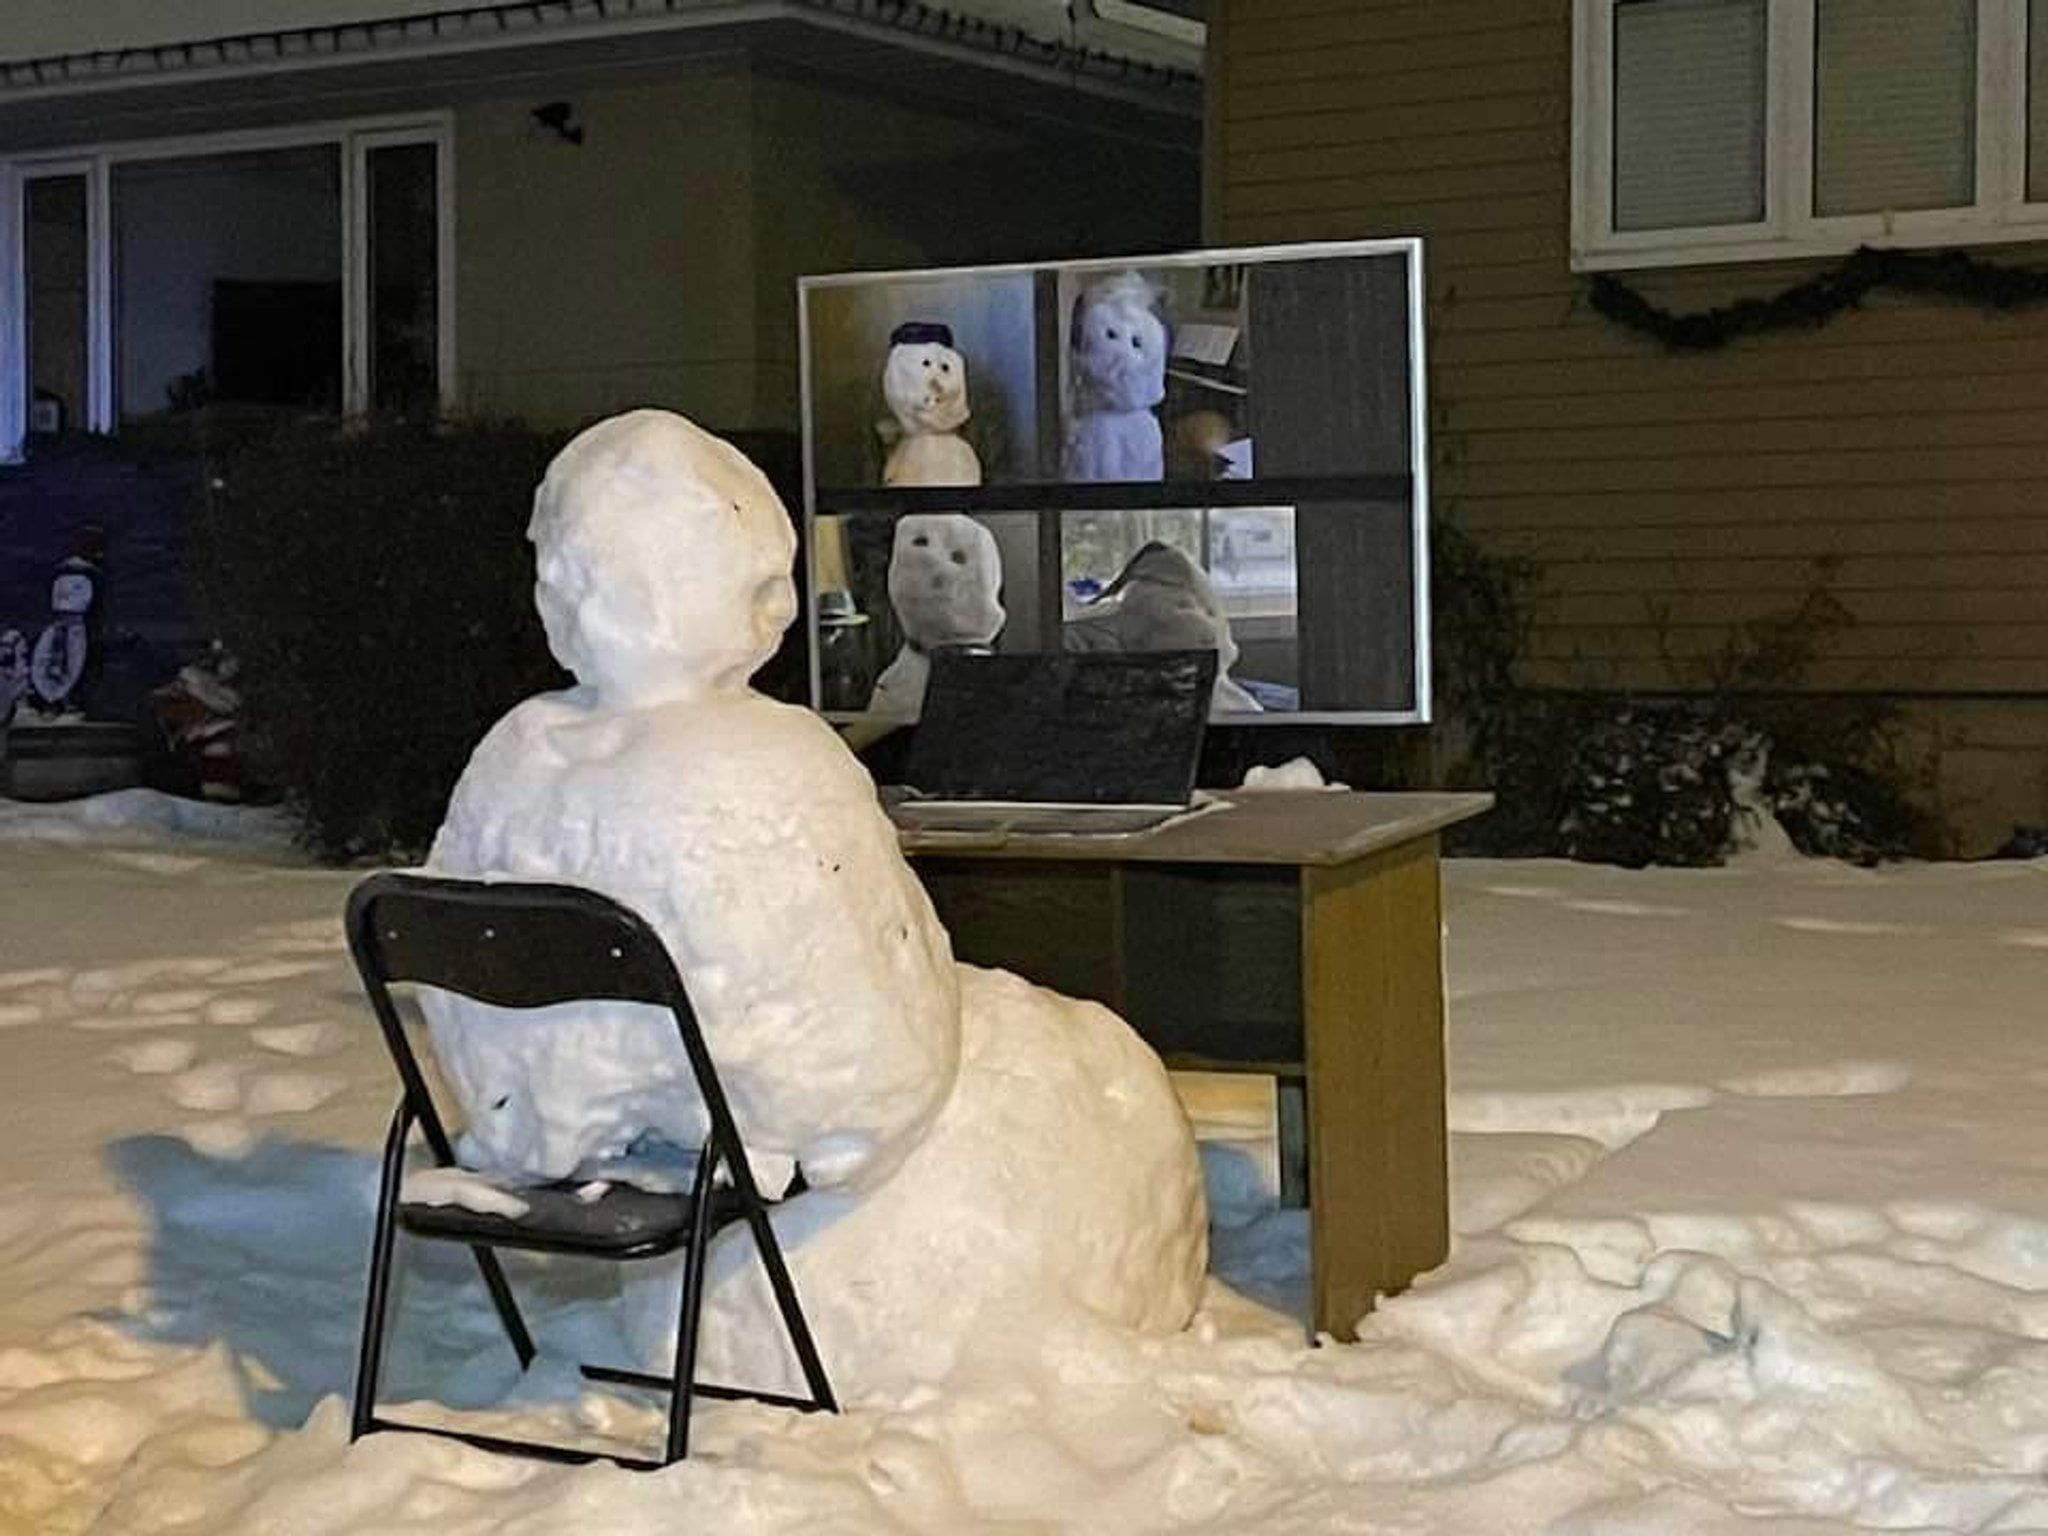 Frosty chatting with the fam